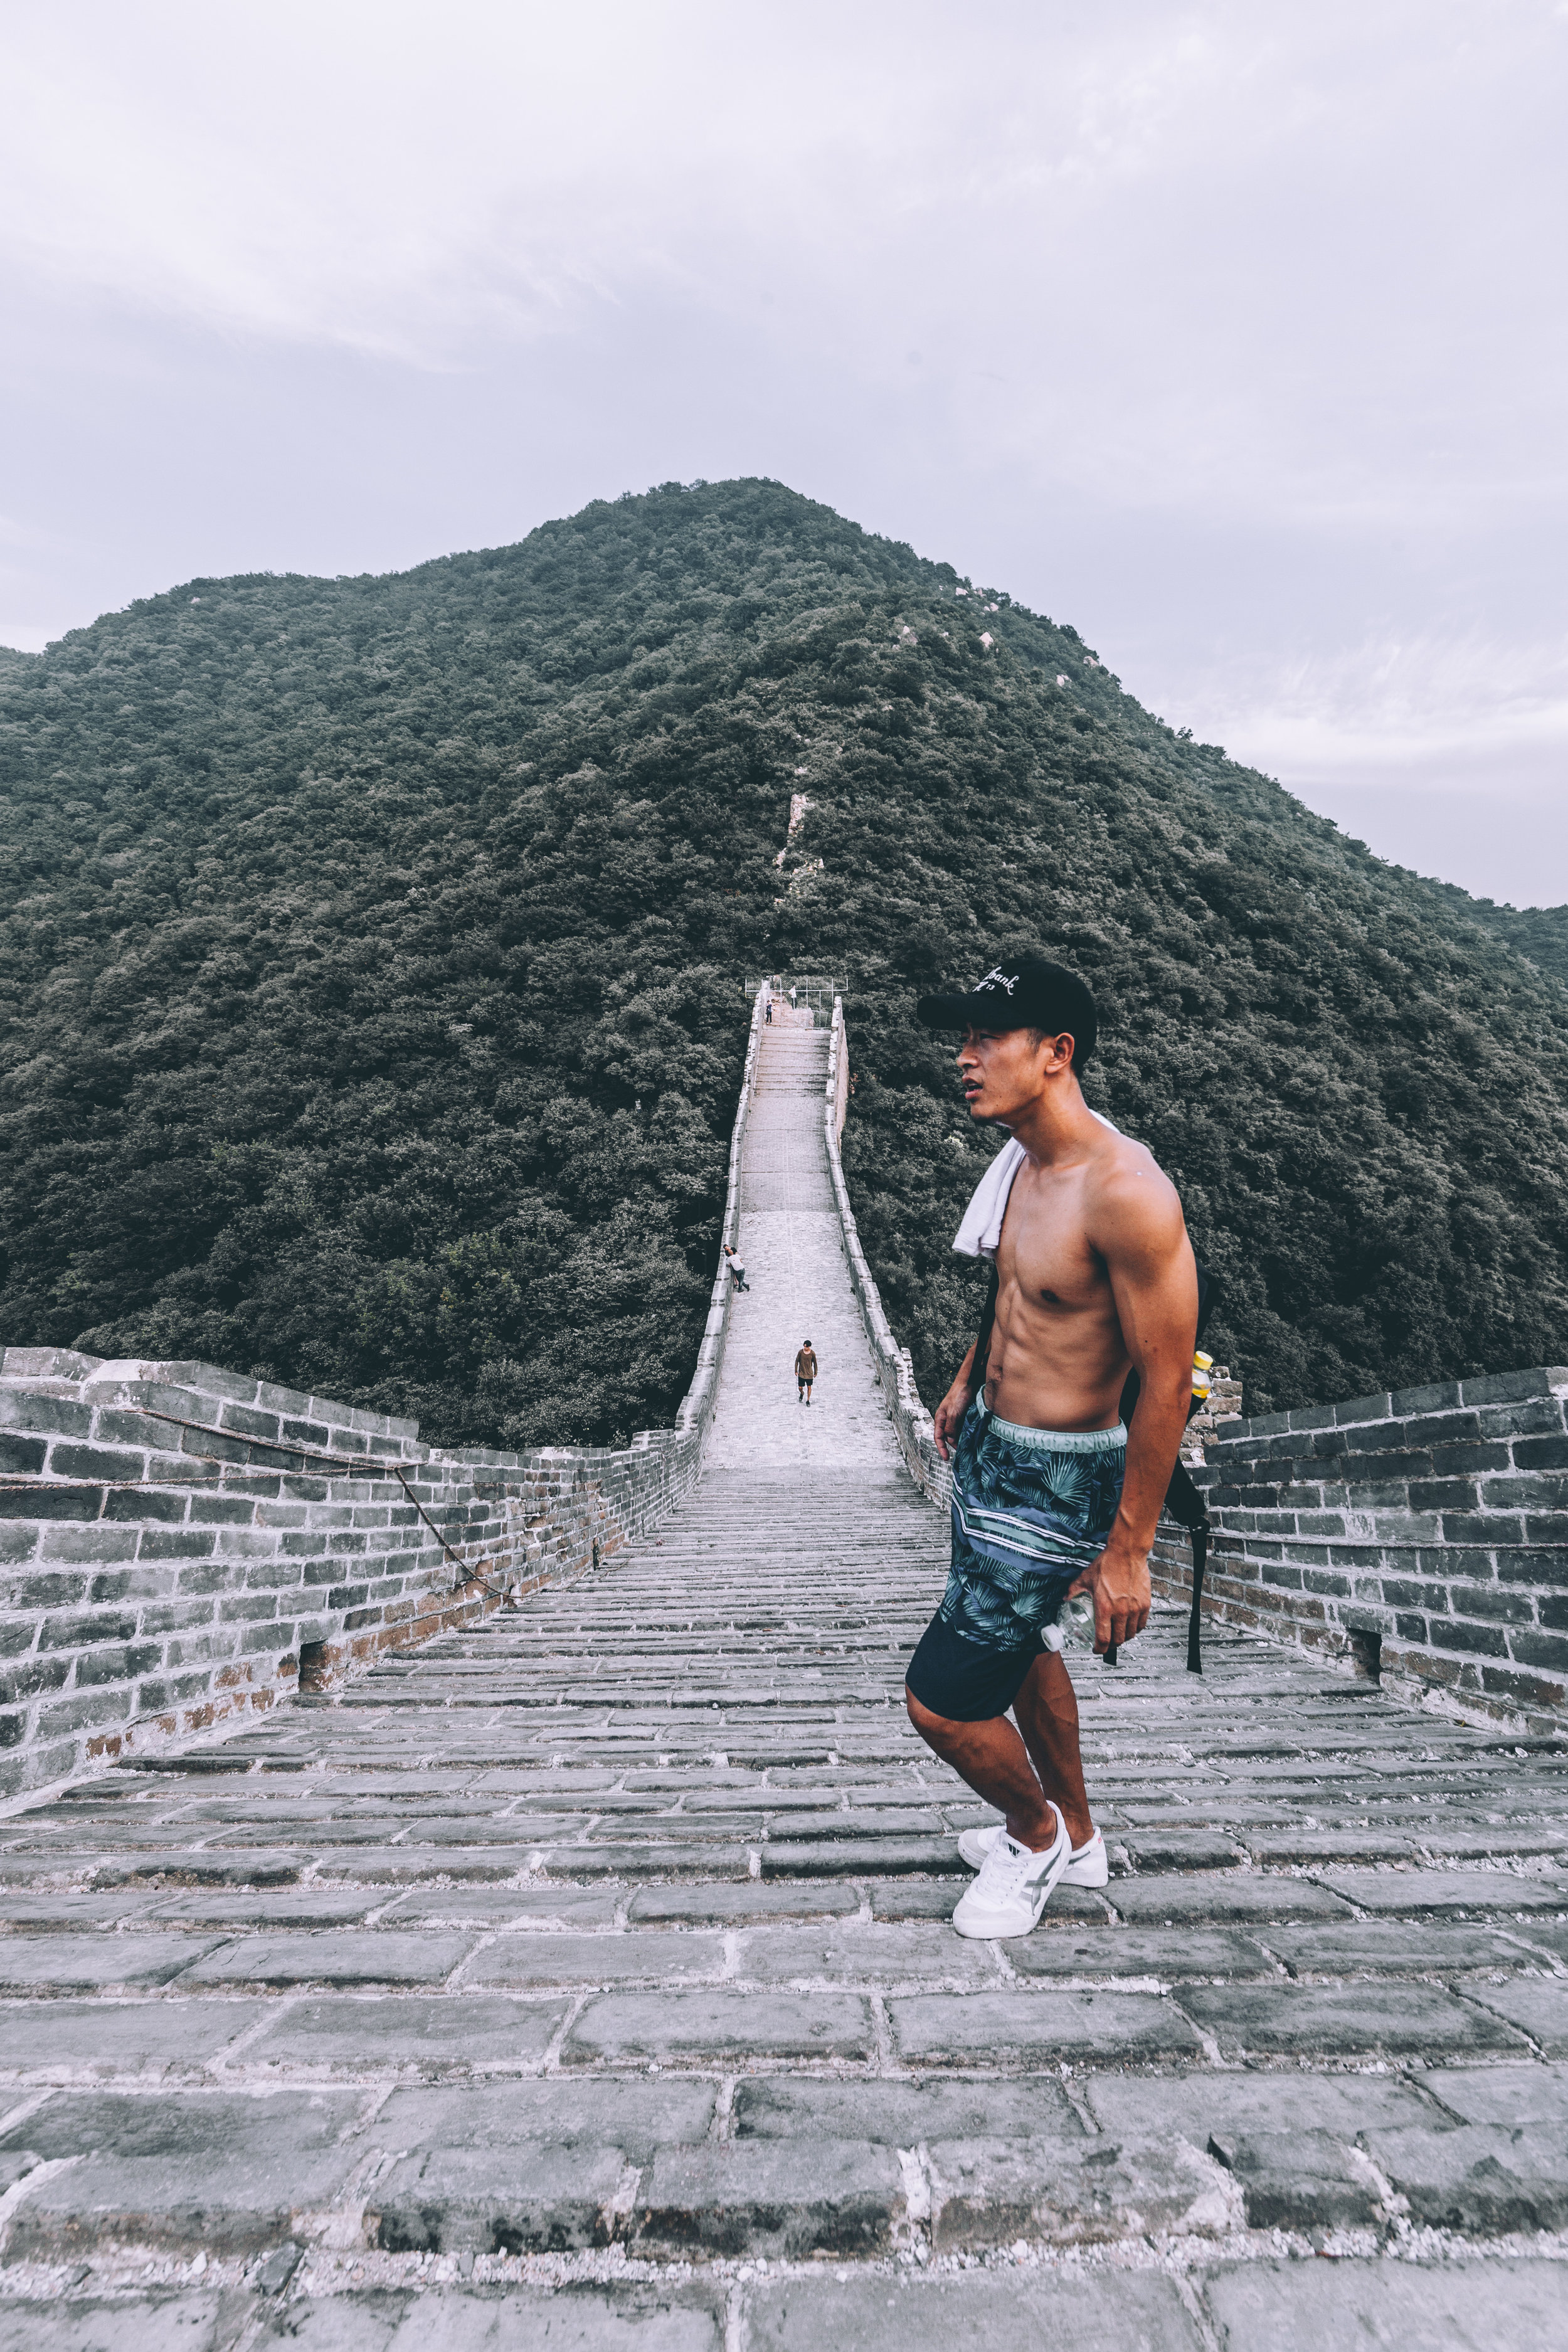 up-on-the-great-wall-of-china.jpg